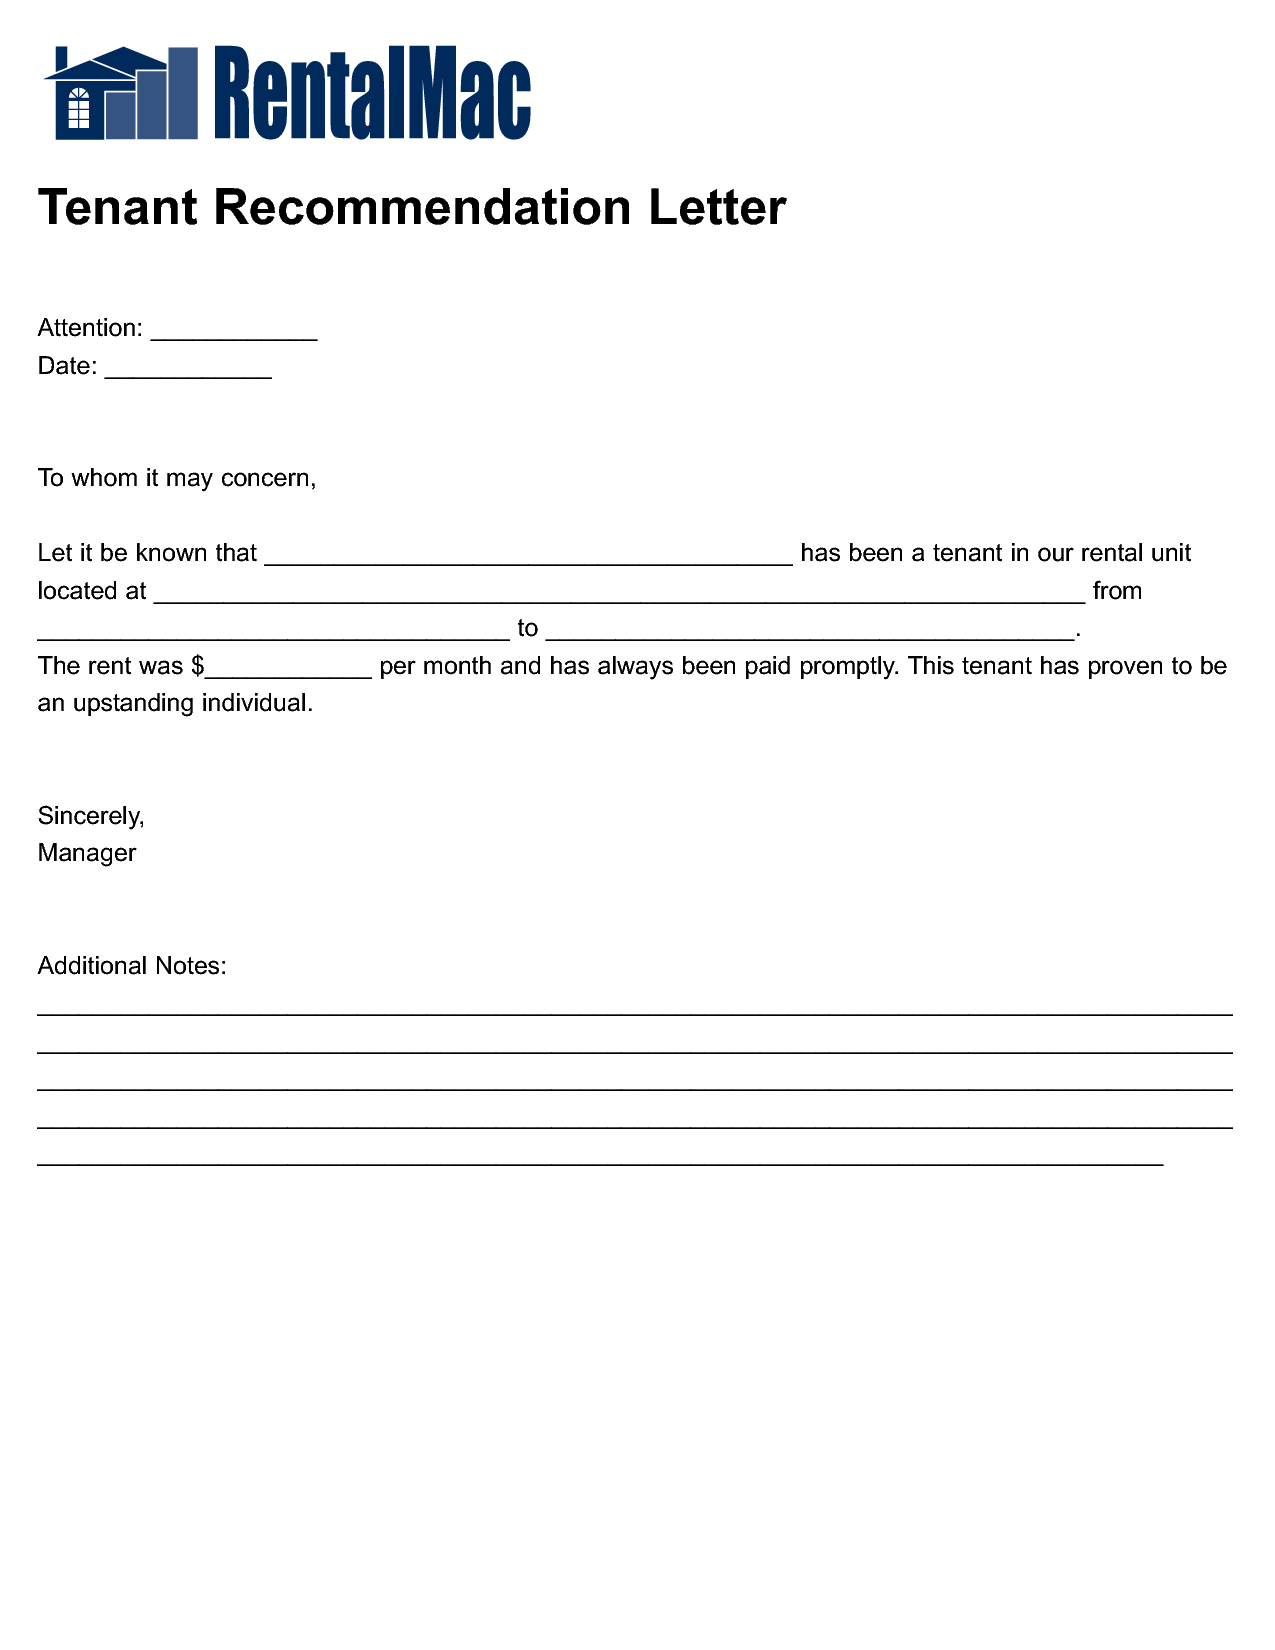 Tenant Reference Letter Template - Housing Reference Letter Letter format formal Sample